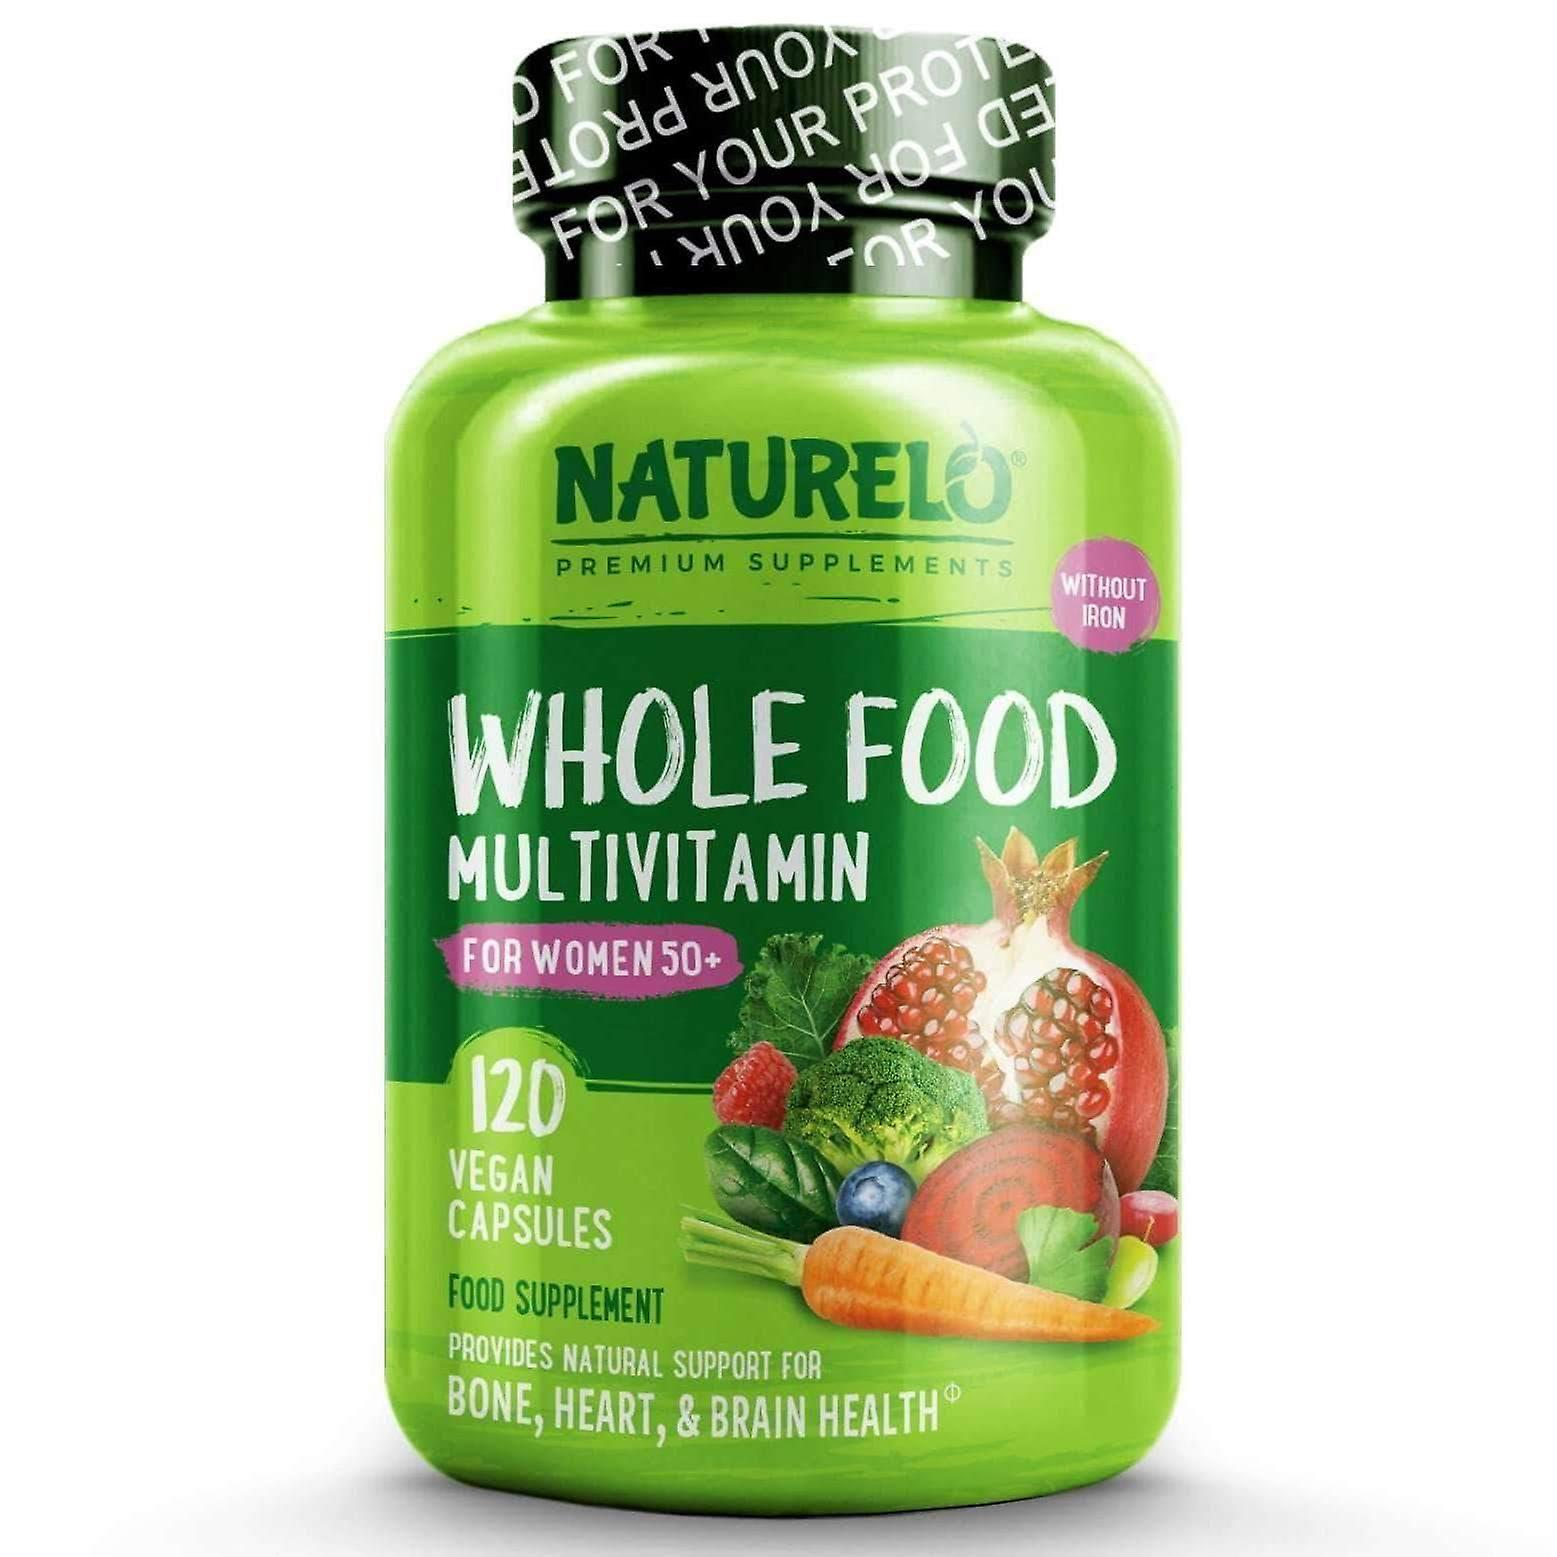 Women's whole food multivitamin 50+ with natural vitamins, fruit & herbal extracts - 120 caps | 1 month supply (vegan)